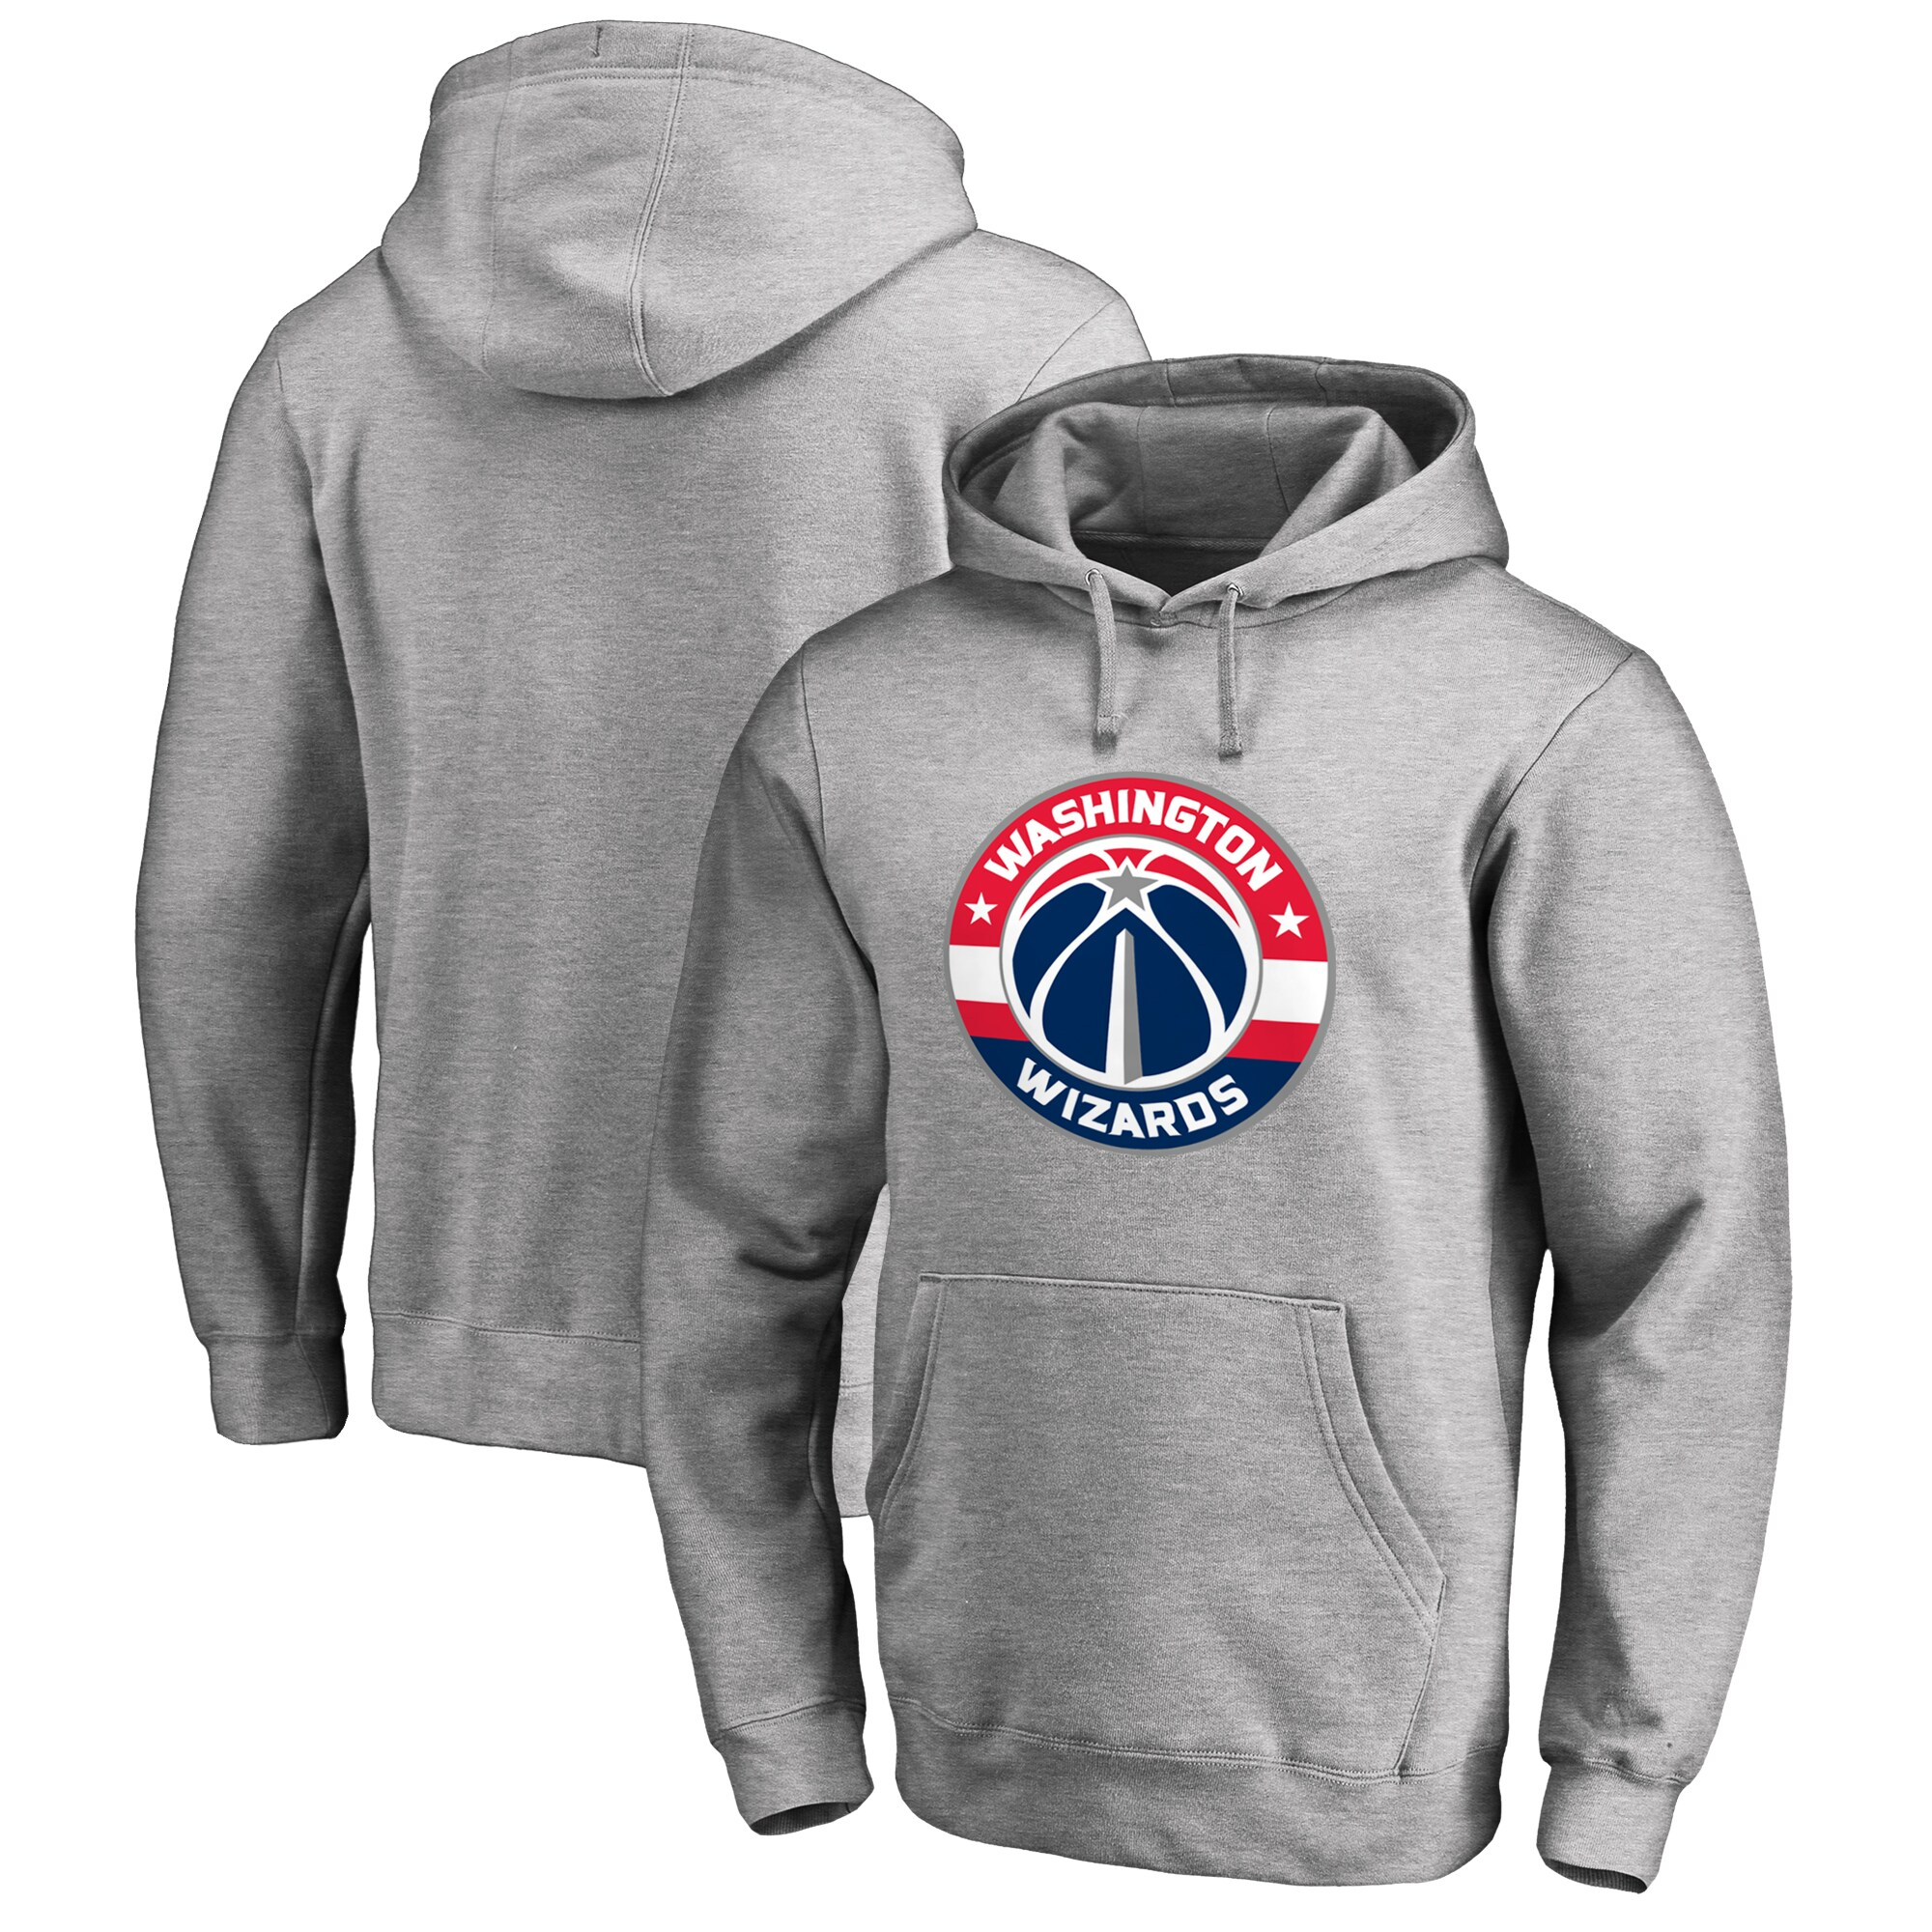 Washington Wizards Fanatics Branded Big & Tall Primary Logo Pullover Hoodie - Ash